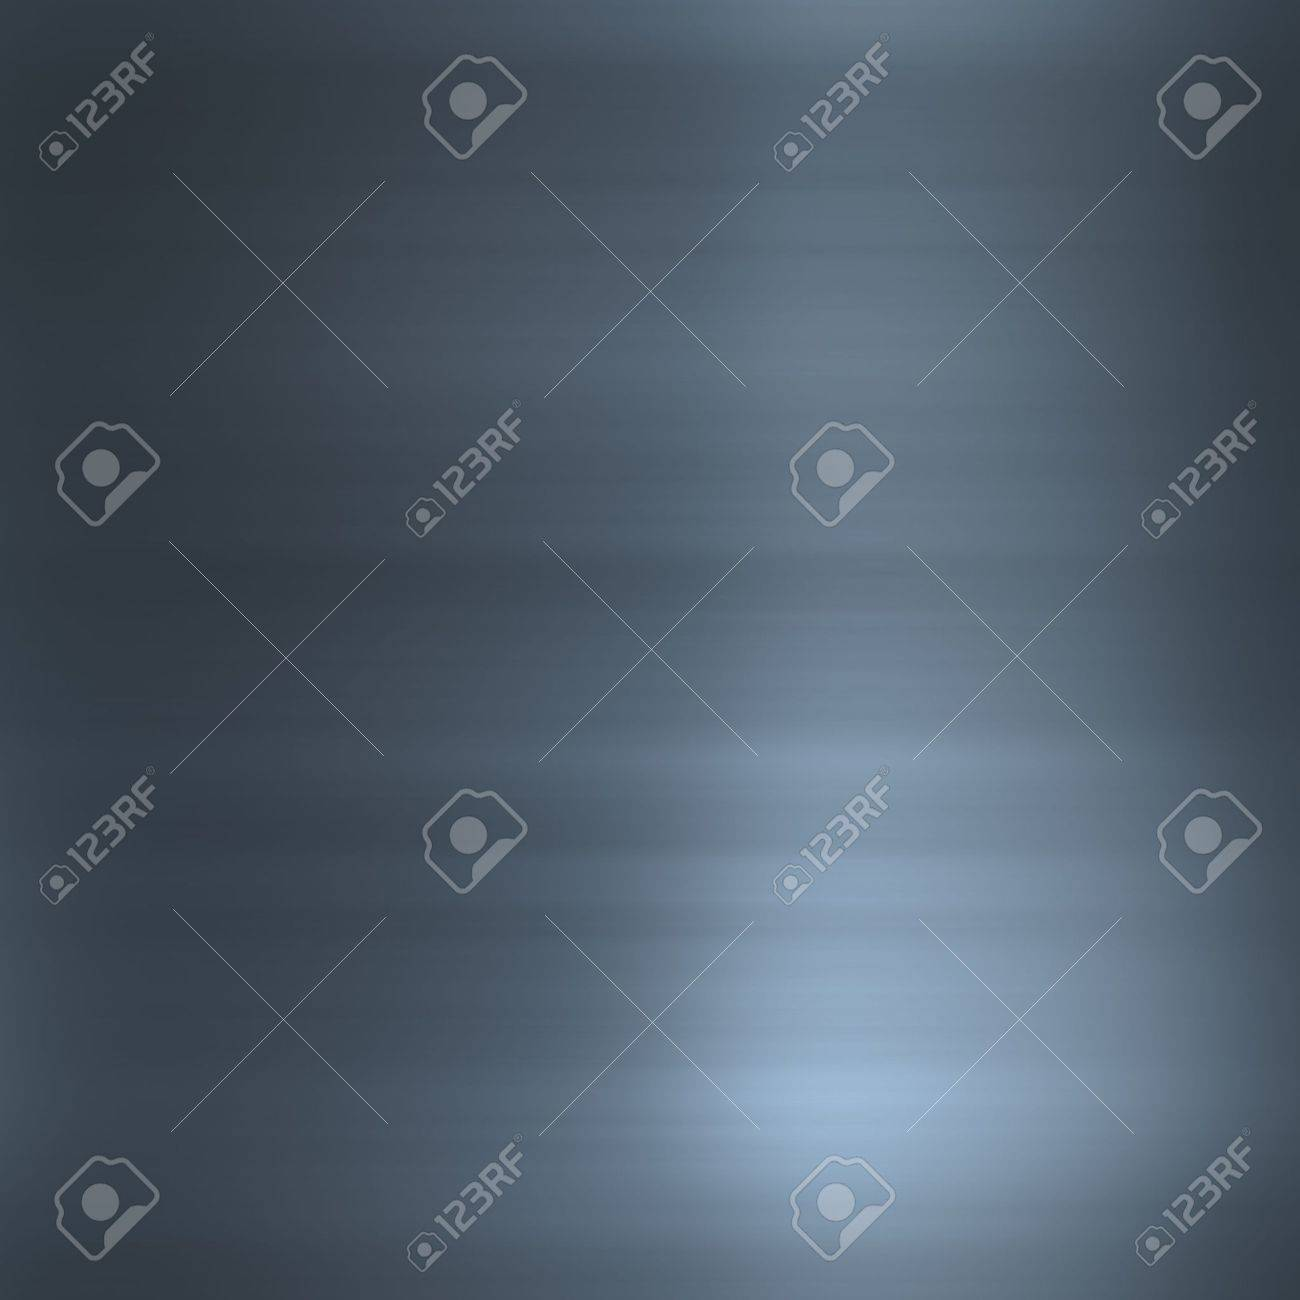 Brushed smooth glossy metal surface texture background illustration Stock Illustration - 3312994